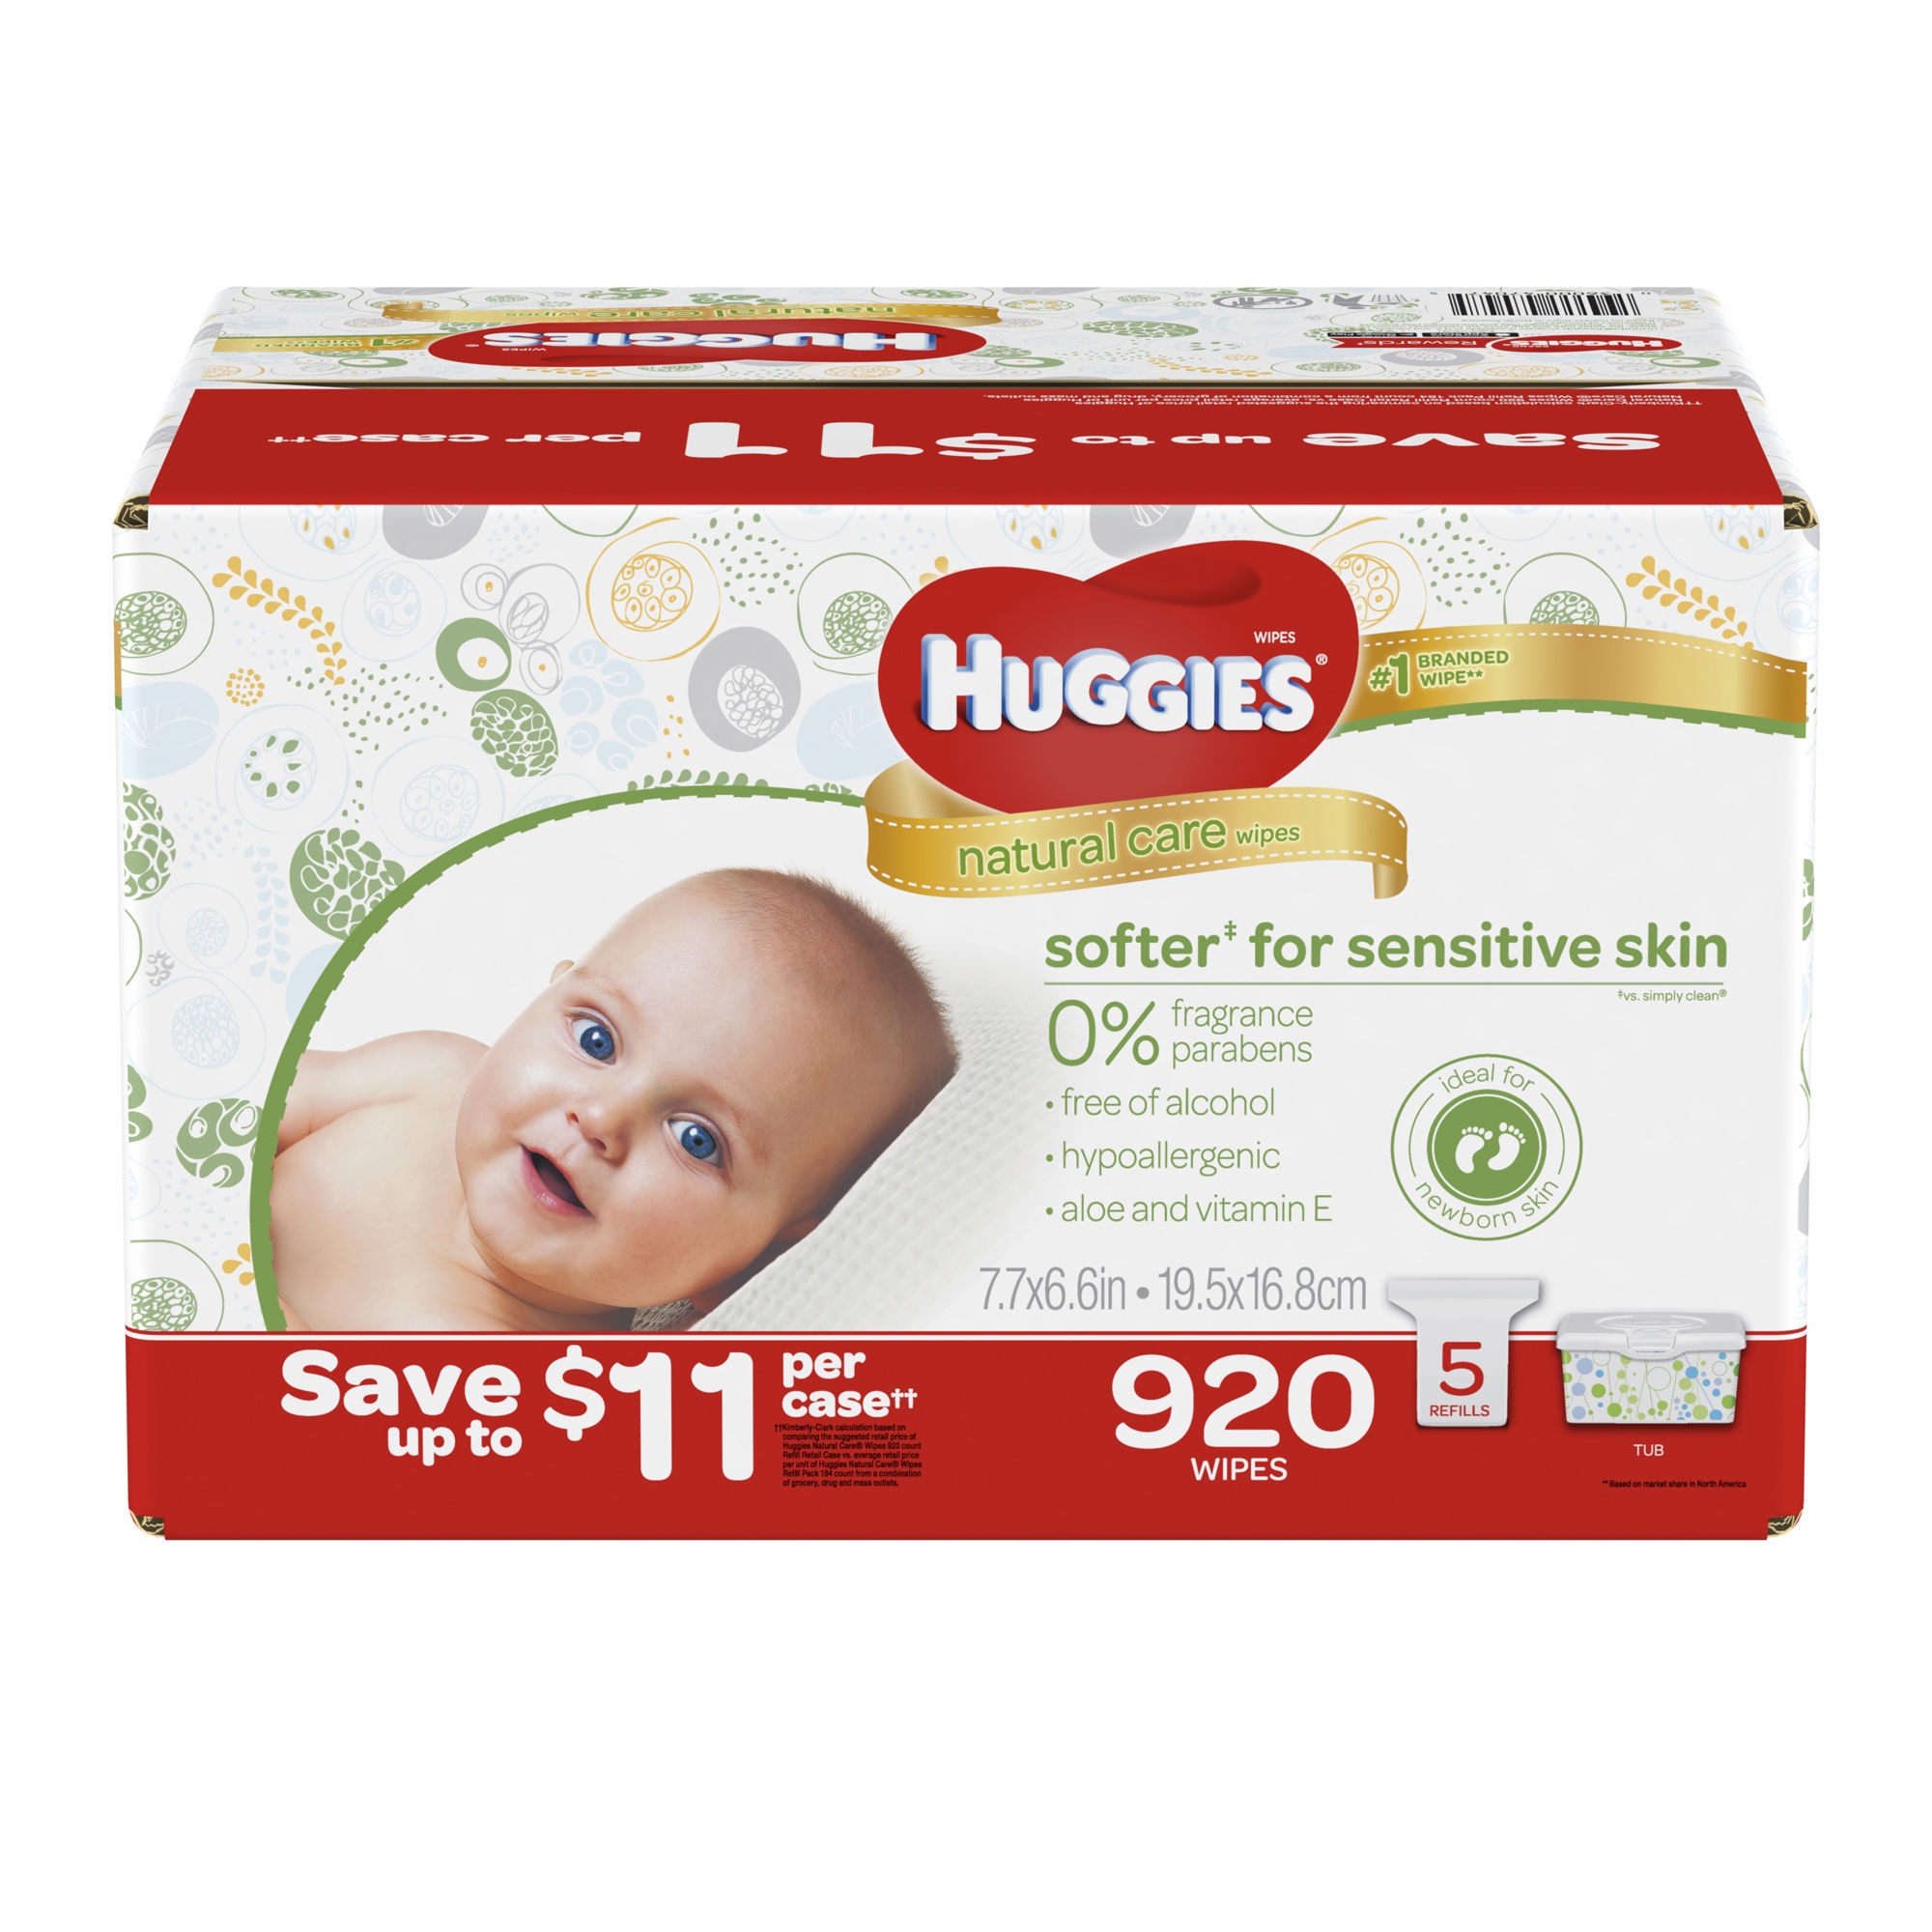 Huggies Natural Care Unscented Baby Wipes Refill Pack, 920 ct. (baby wipes Wholesale Price by